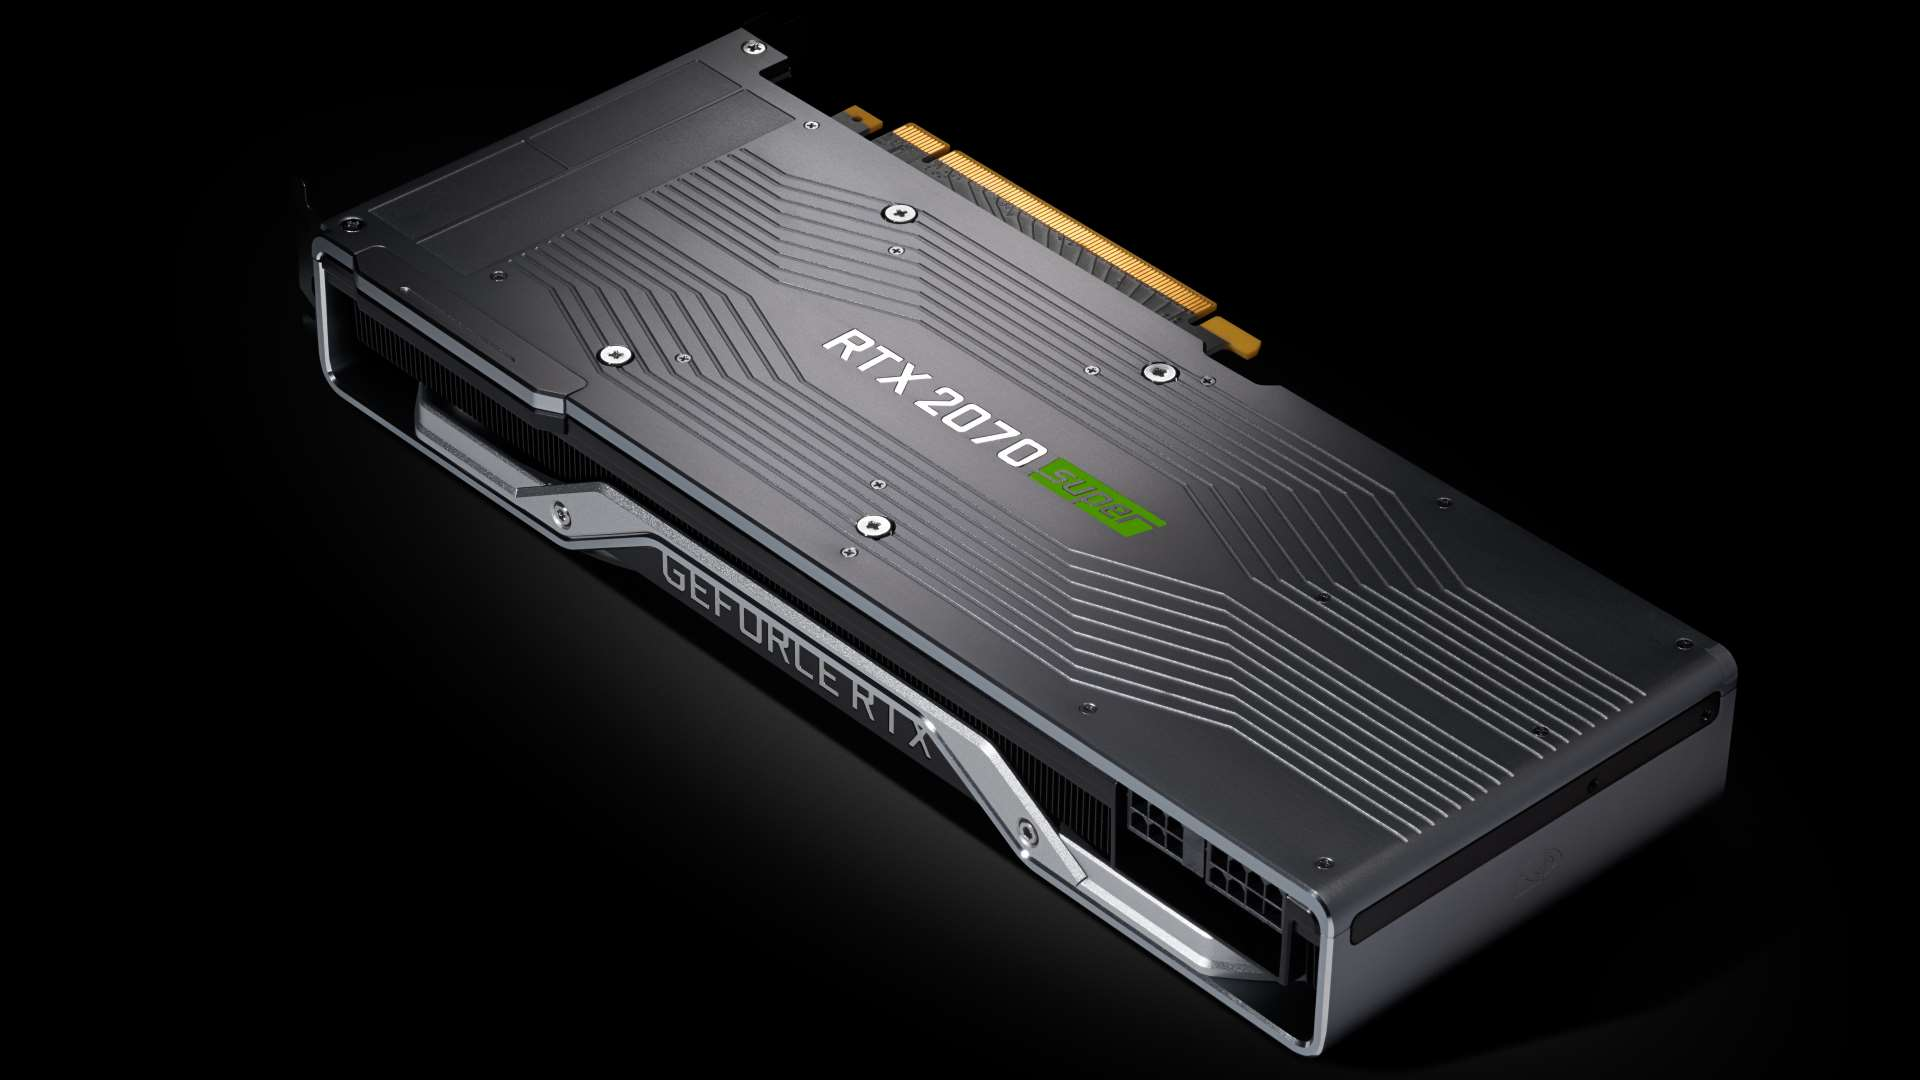 Nvidia RTX 2070 Super review: the RX 5700 XT runs it close